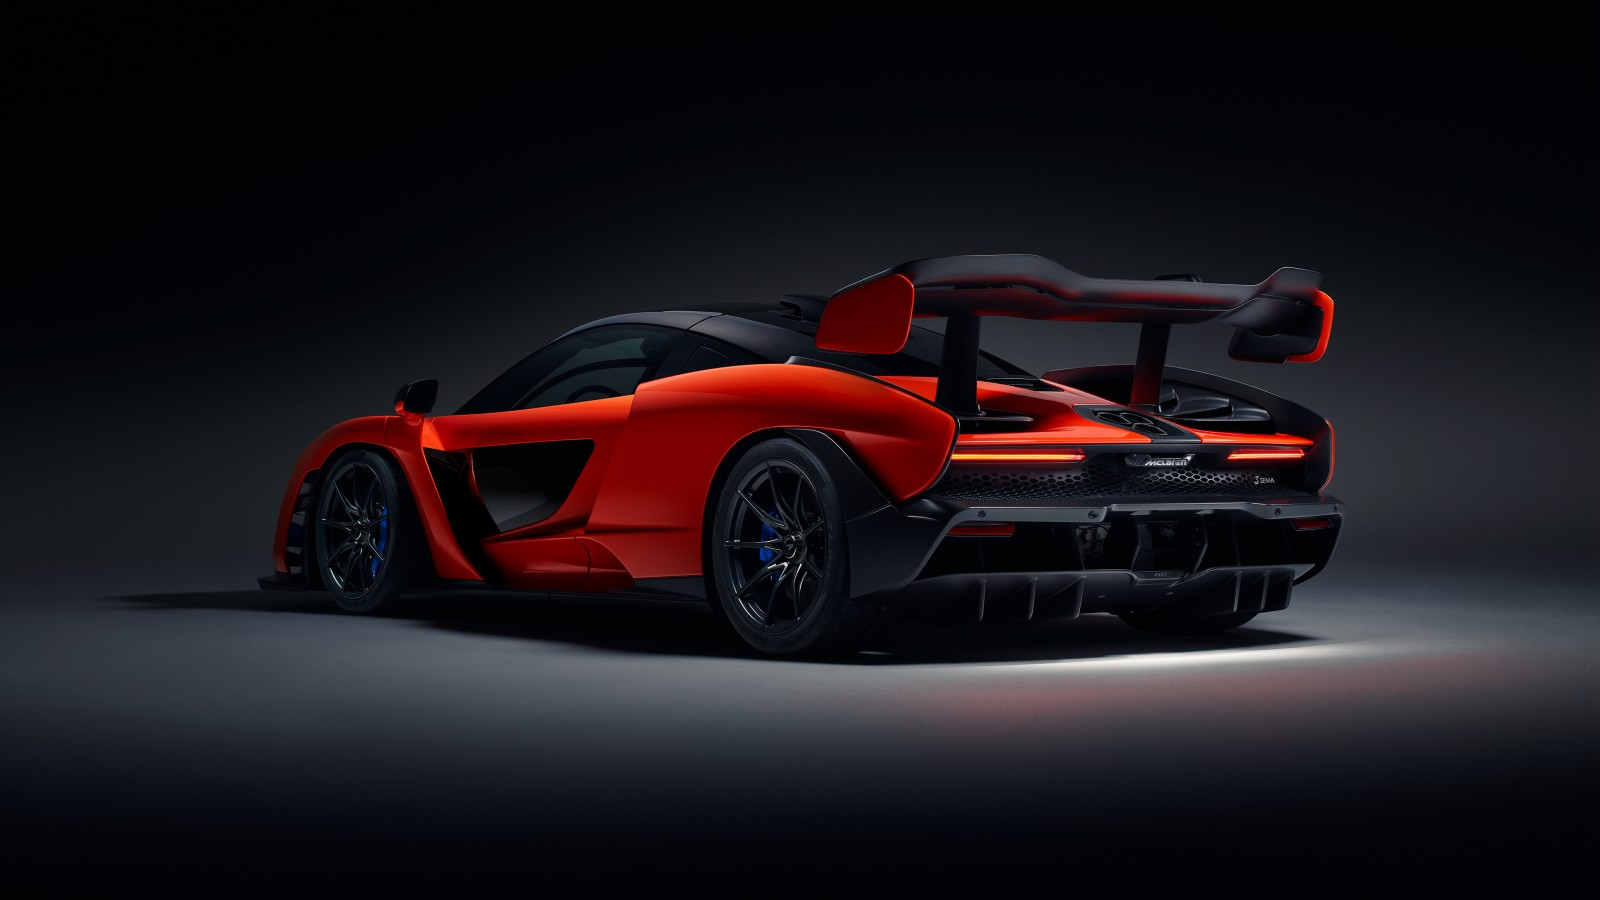 2018 Mclaren Senna 4k 8 Wallpaper Hd Car Wallpapers Id 9262